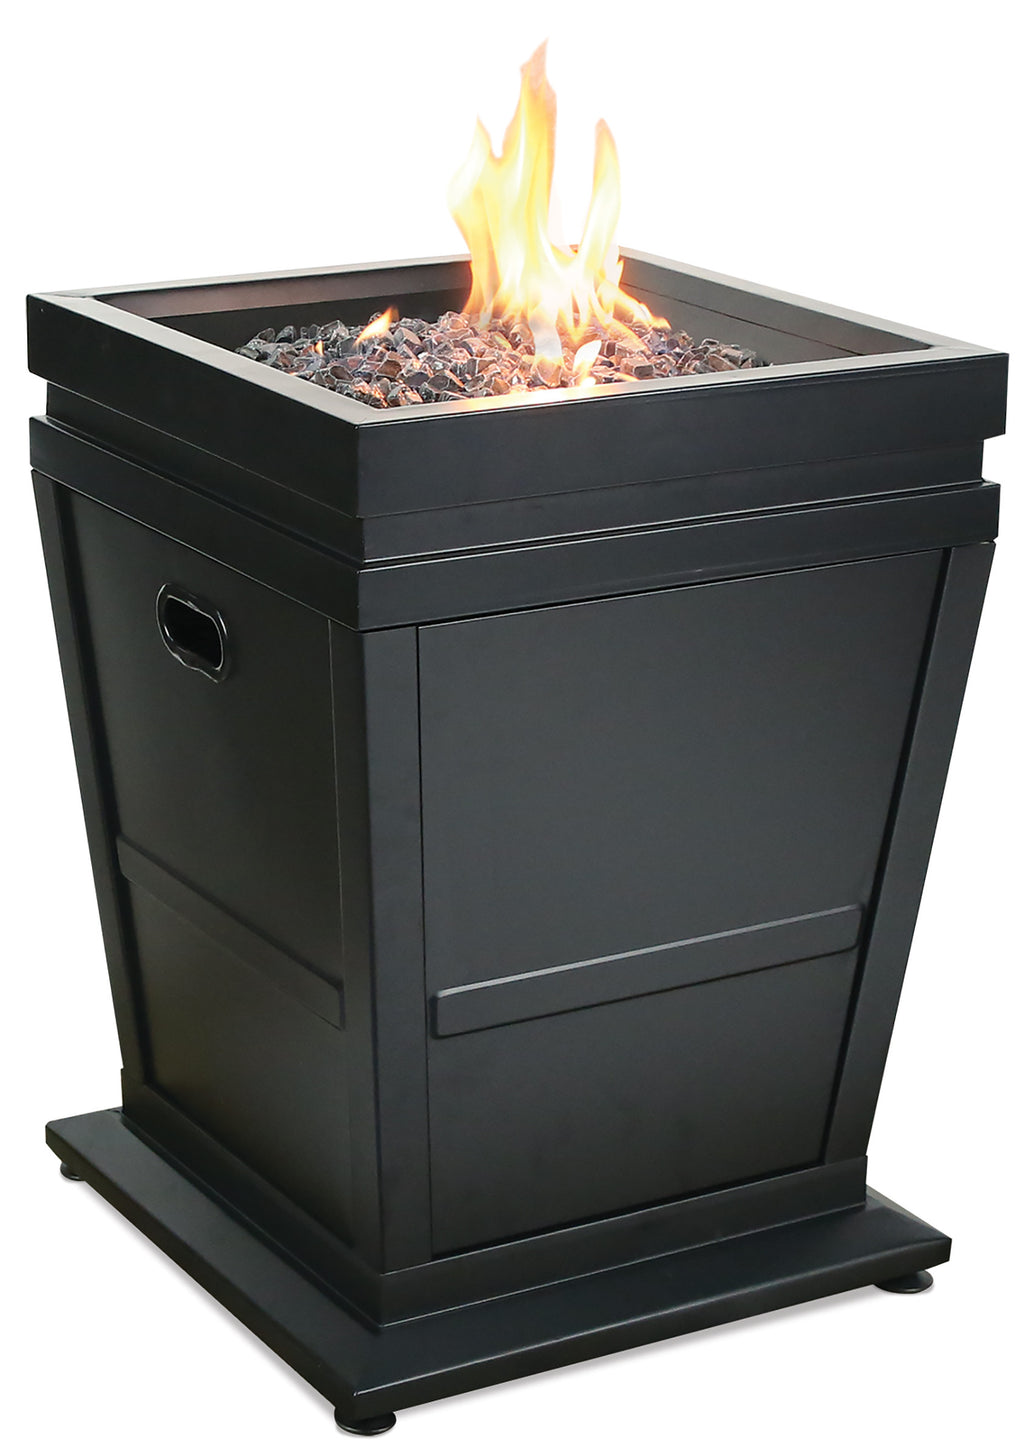 Endless Summer GAD15021M LP Gas Outdoor Fire Column, Black